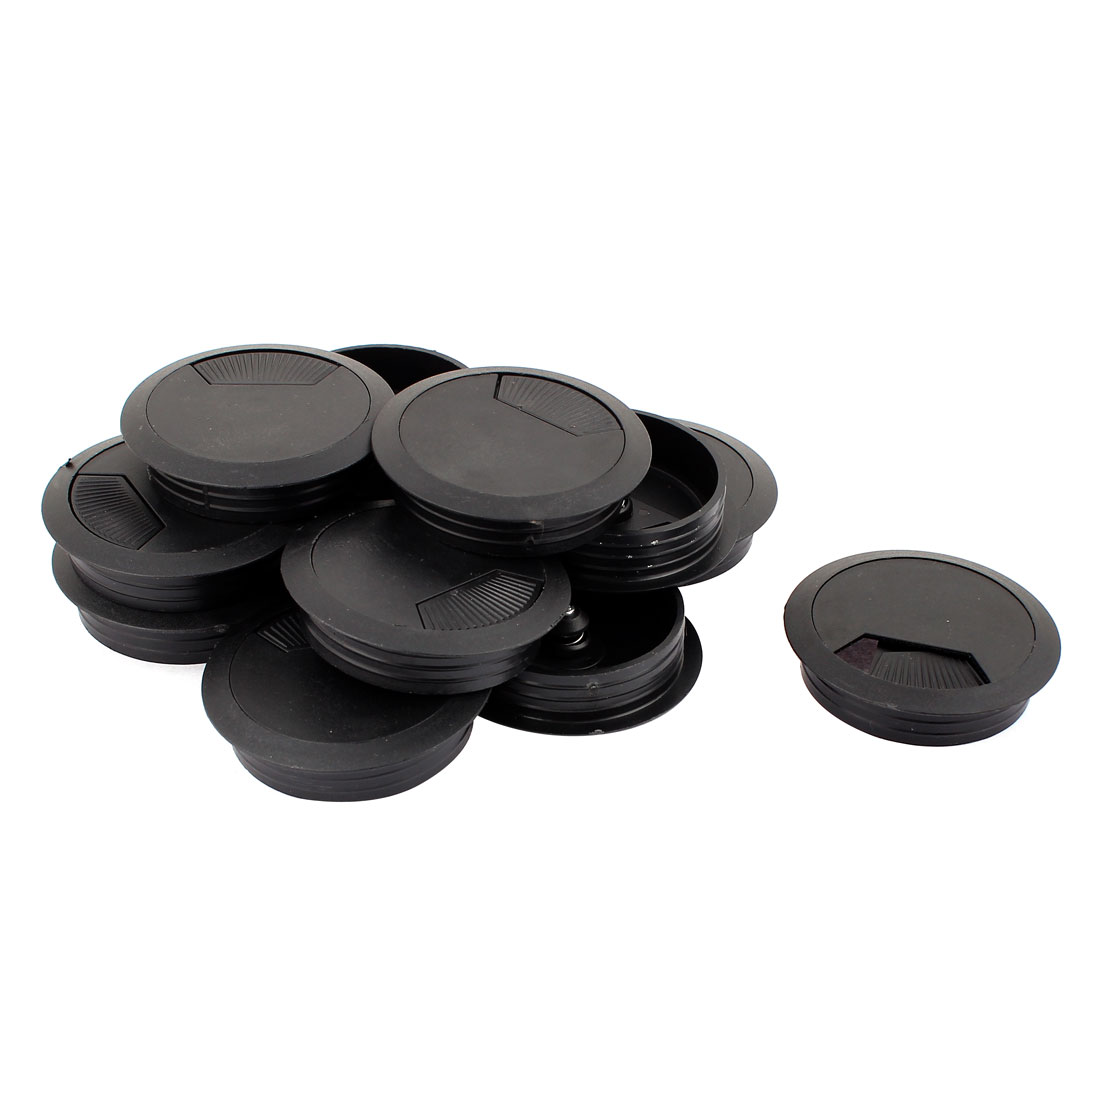 Office Desk Plastic Cable Cord Organizer Grommet Hole Cover Black 60mm Dia 12Pcs